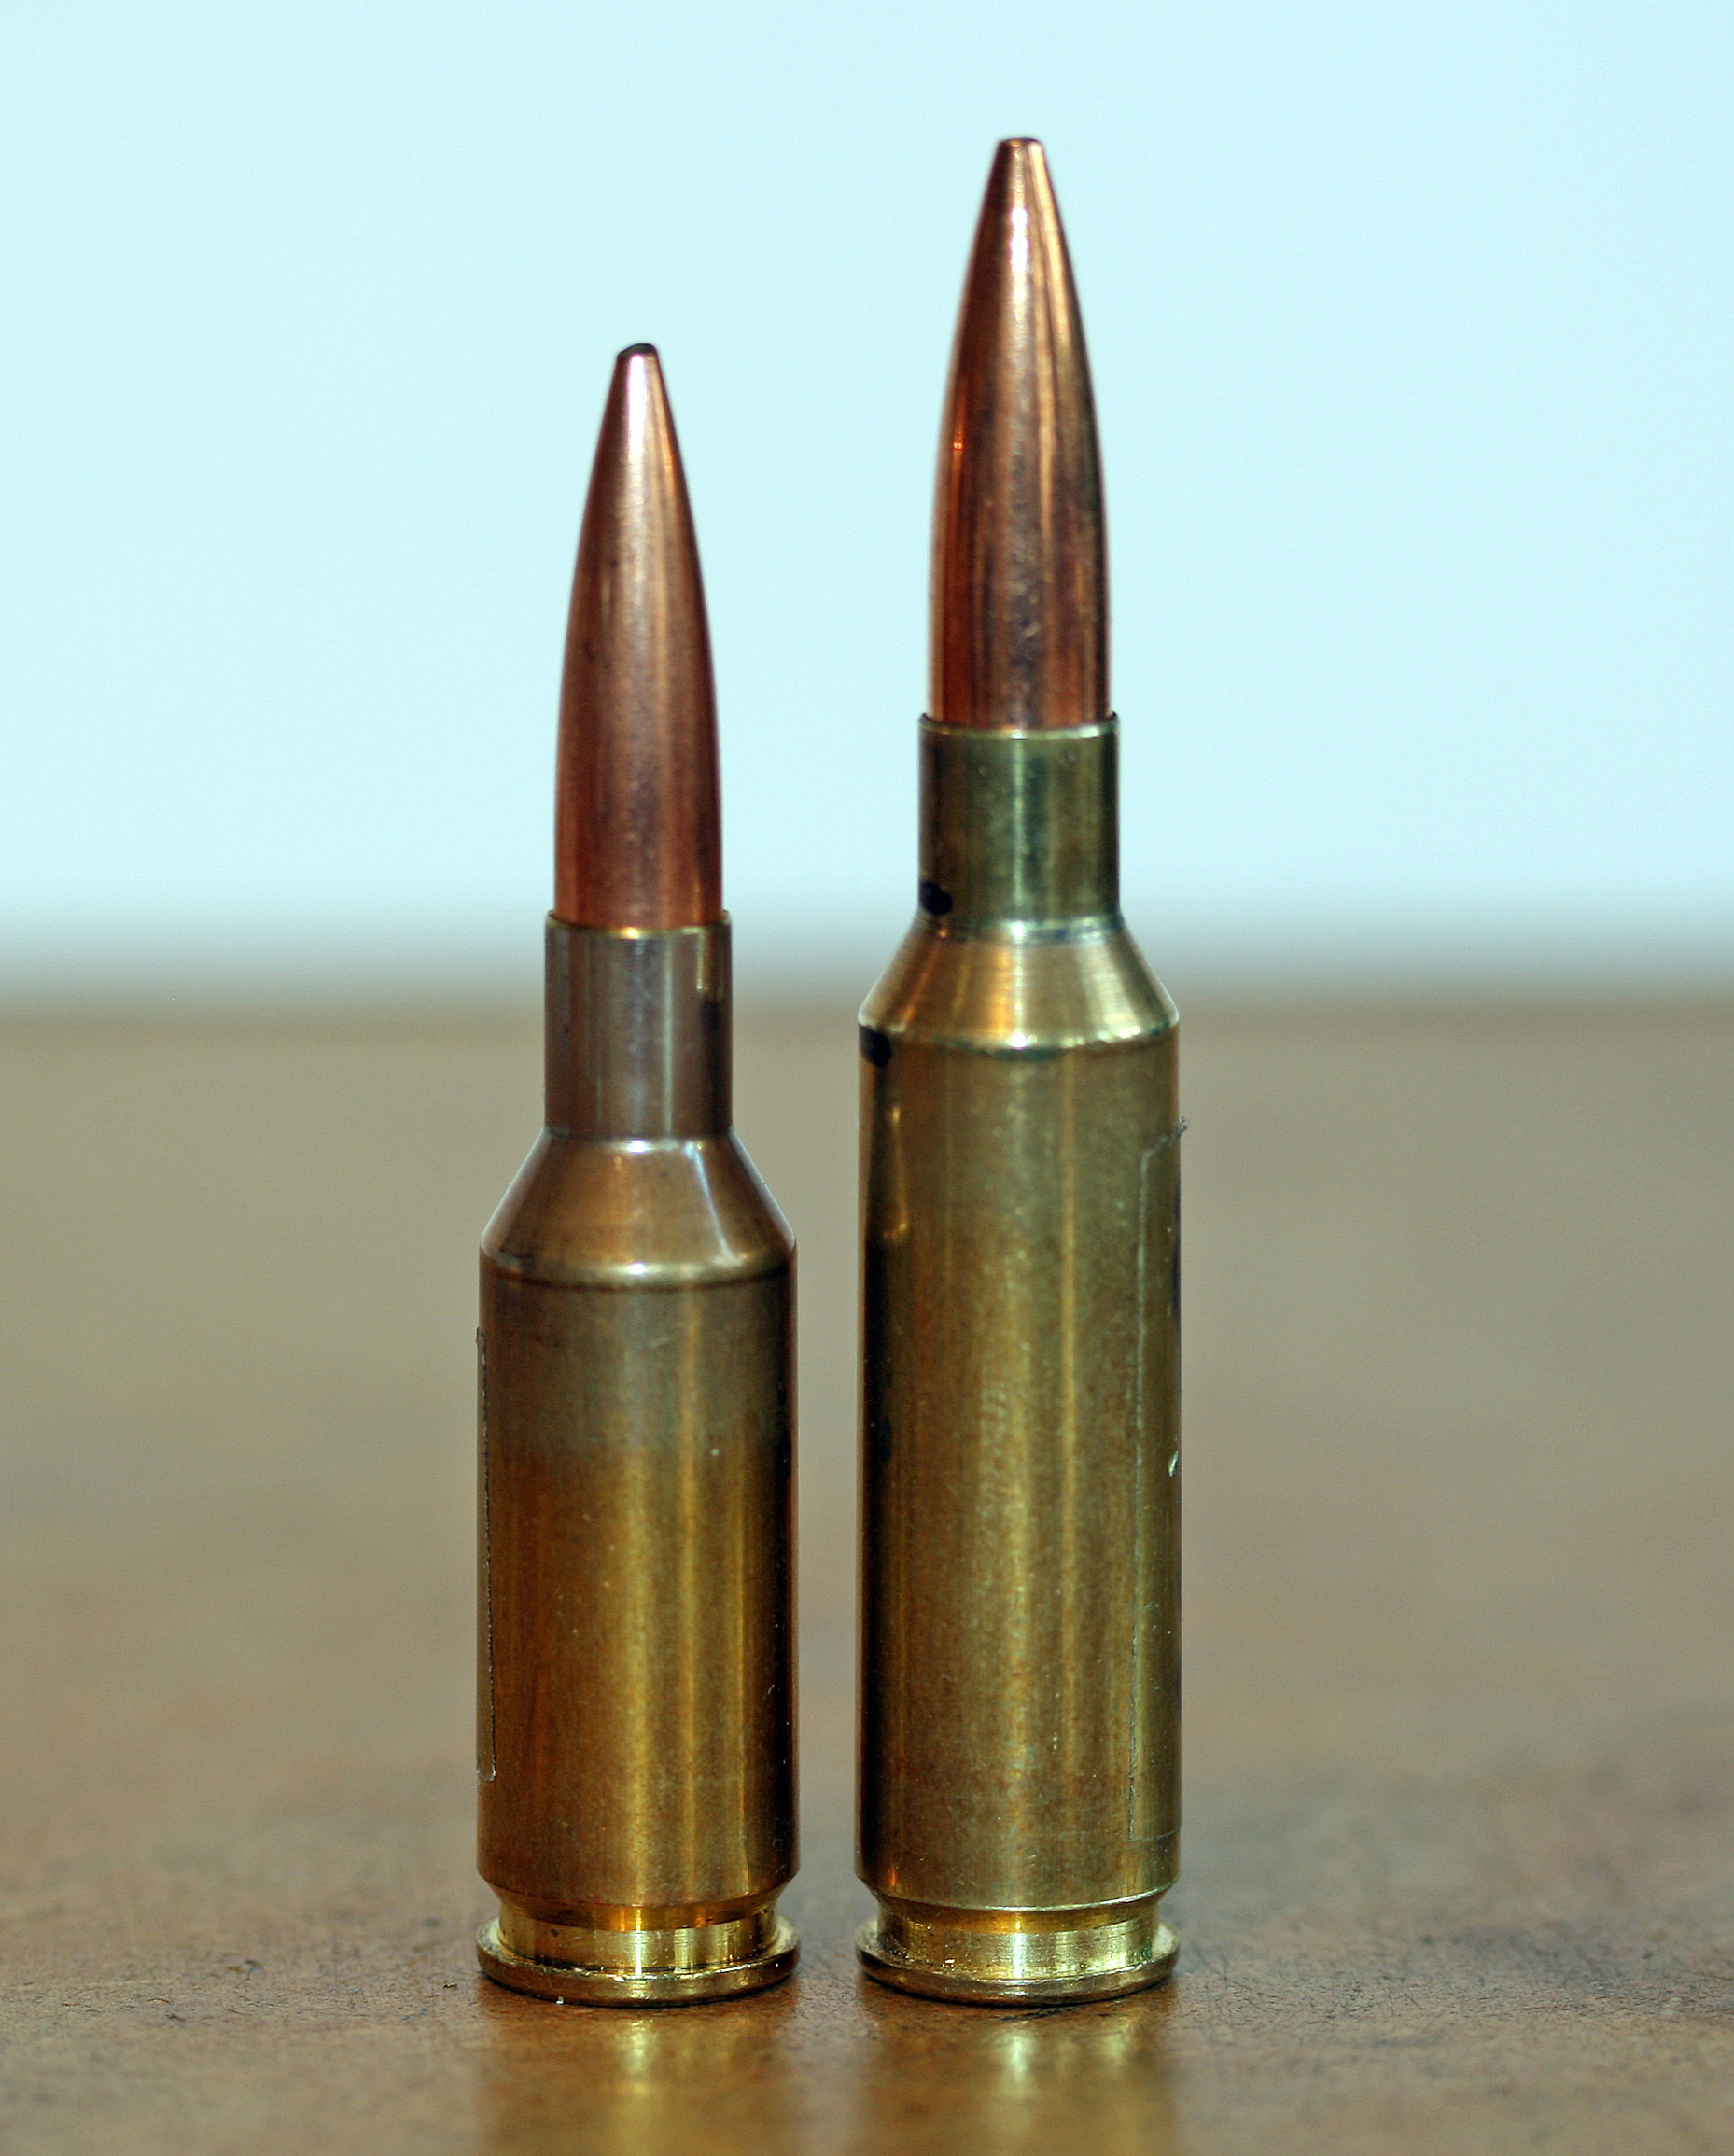 6mm BR Norma, 6 5x47mm Lapua | Reloading | Shooting practice